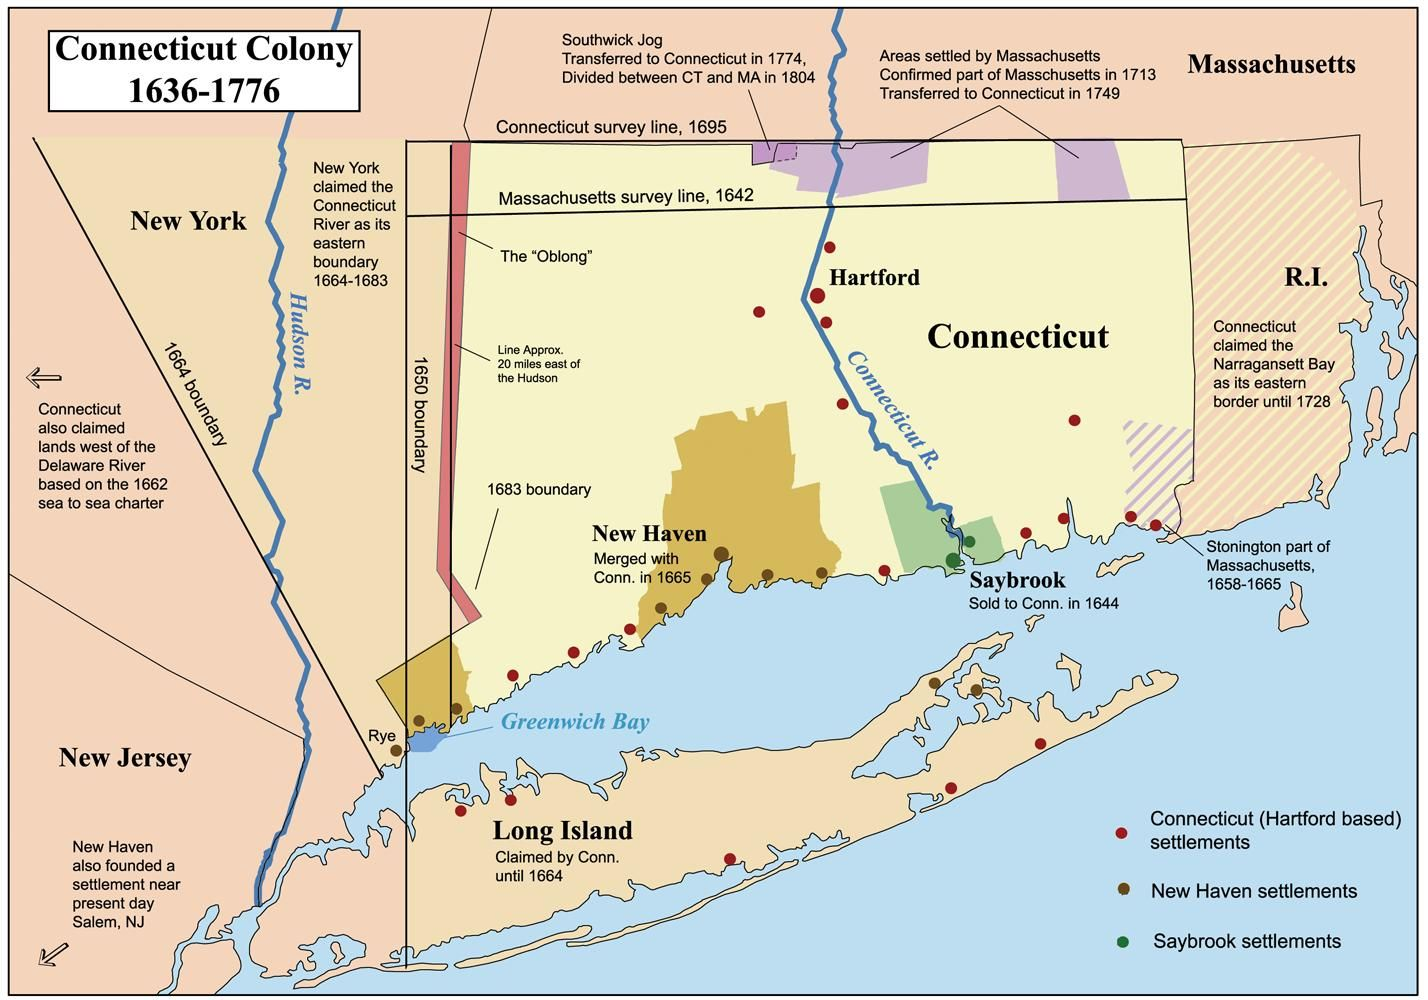 Evolution Of The Connecticut Colonys Borders MAPS - 1776 us map